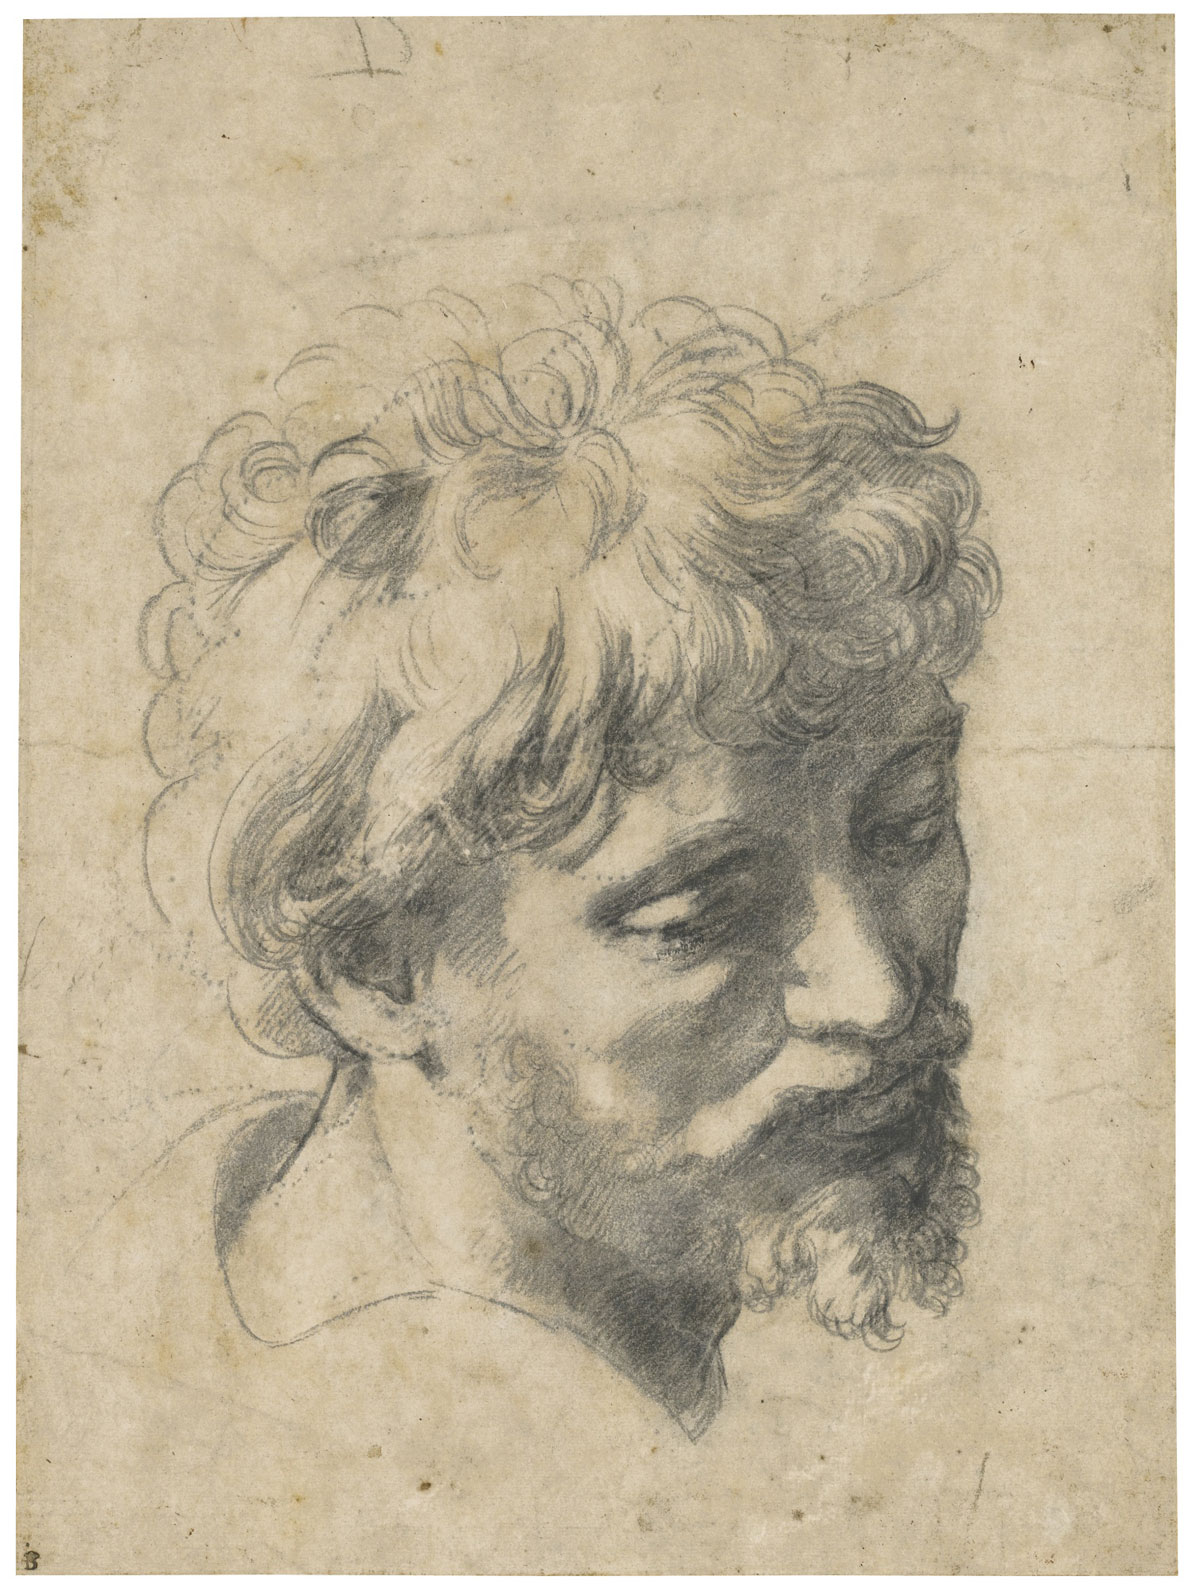 $48 Million Raphael Sketch Set a Record Price at Sotheby's Auction